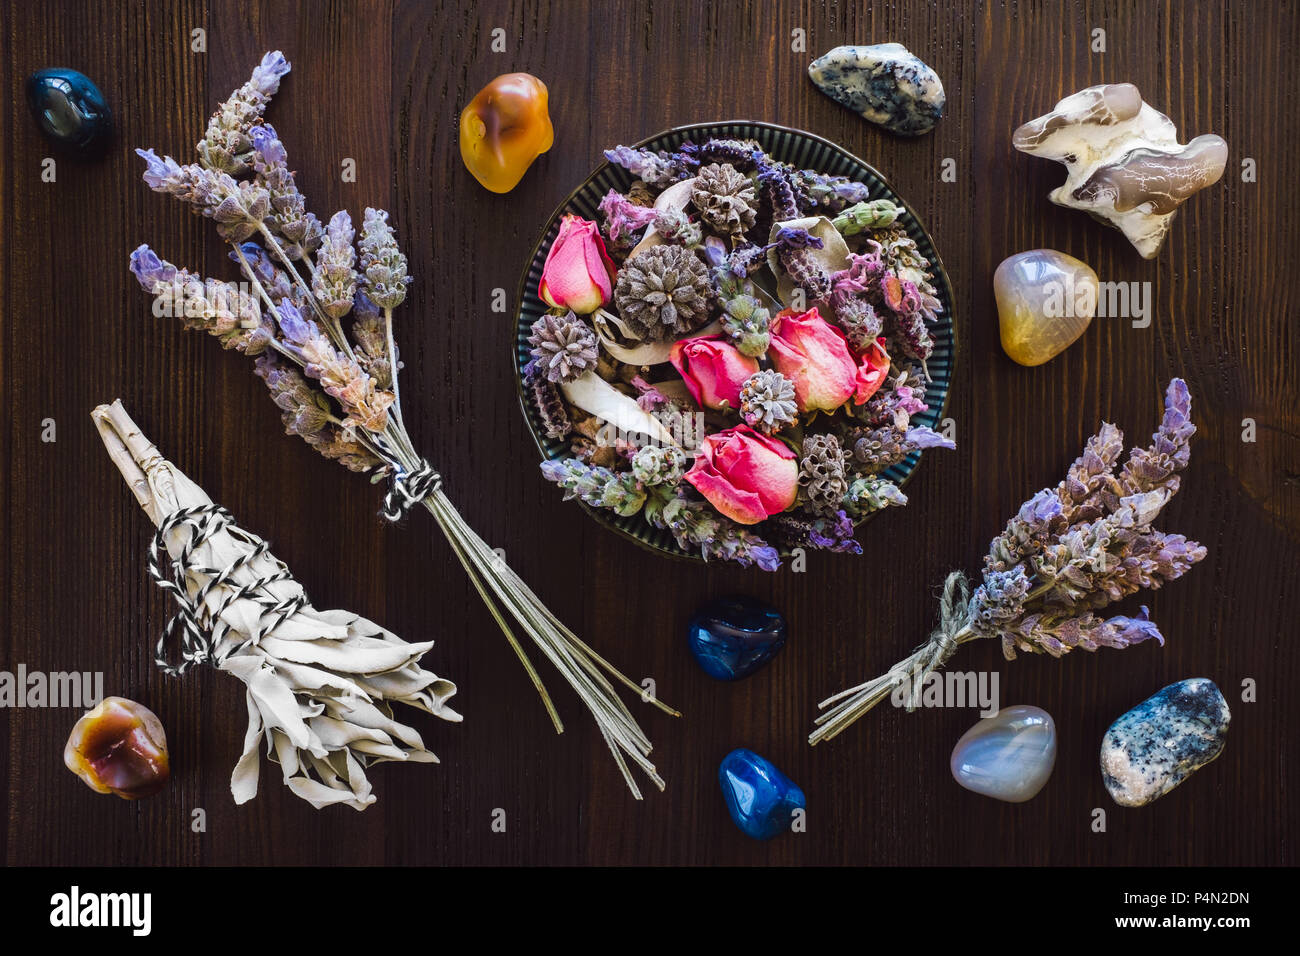 Dried Lavender, Rose and Sage with Agate, Fire Agate, Dendridic Agate and Snakeskin Agate on Dark Wood Table - Stock Image